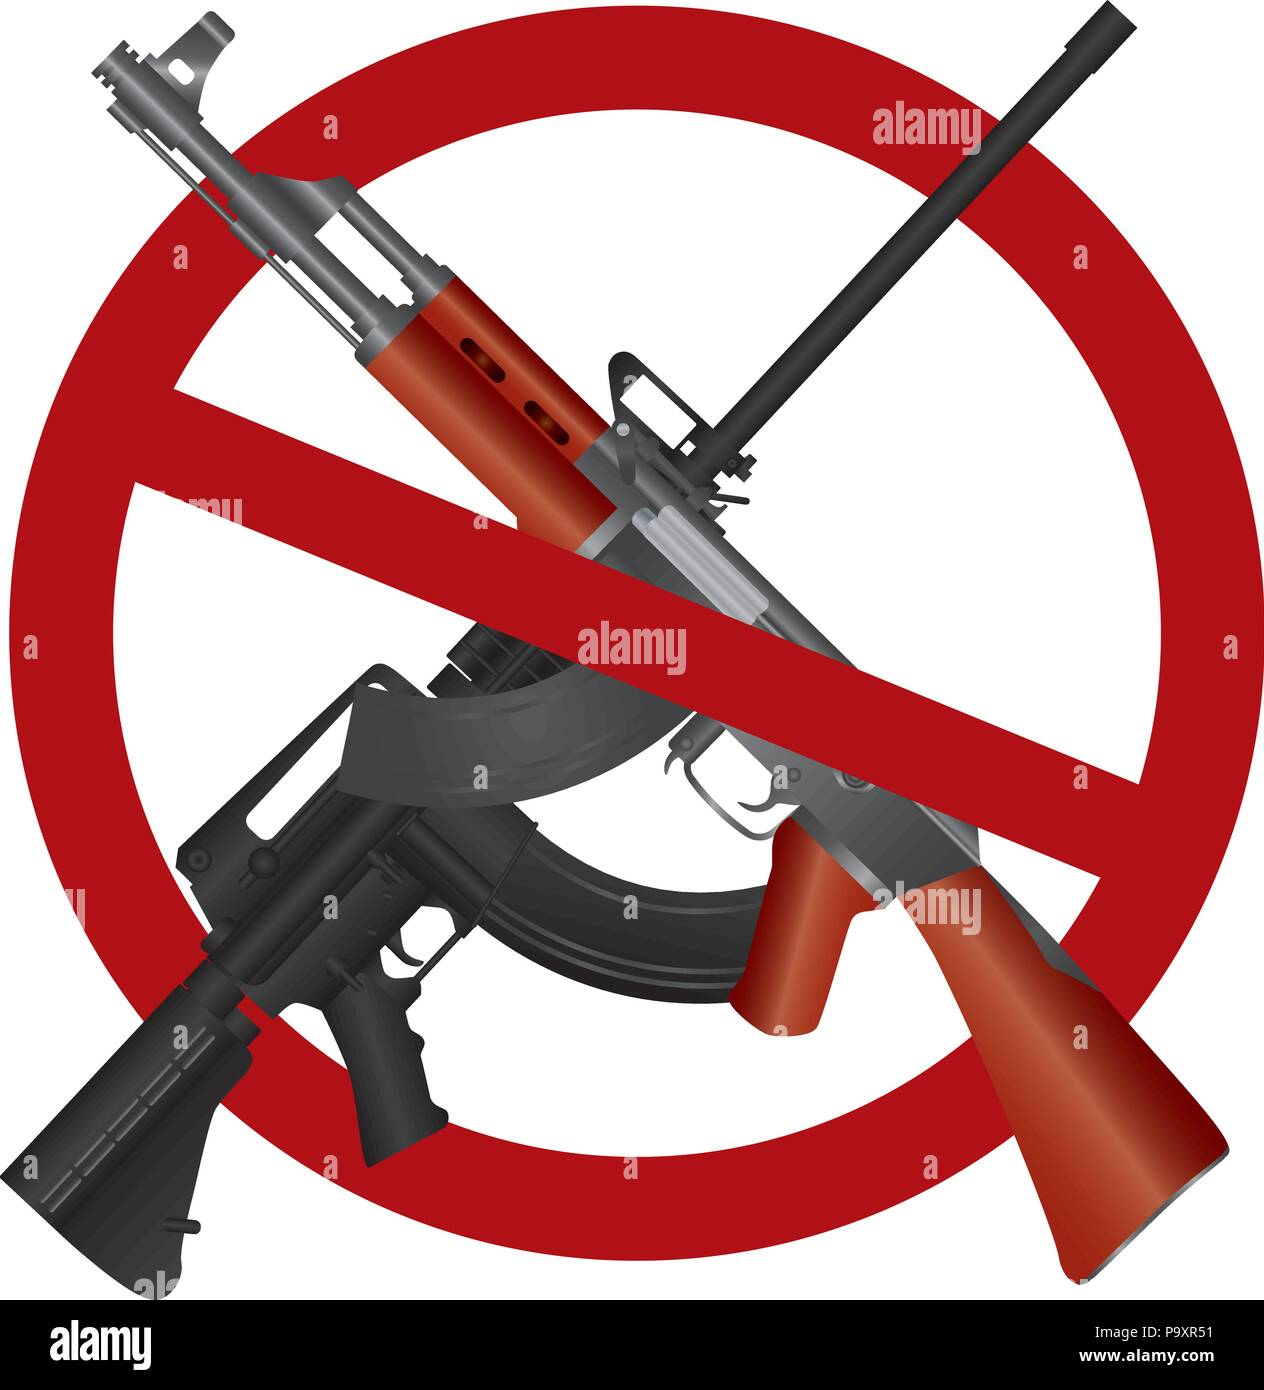 Assault Rifle AR 15  AK 47 Gun Ban Symbol Isolated on White Background Illustration - Stock Image